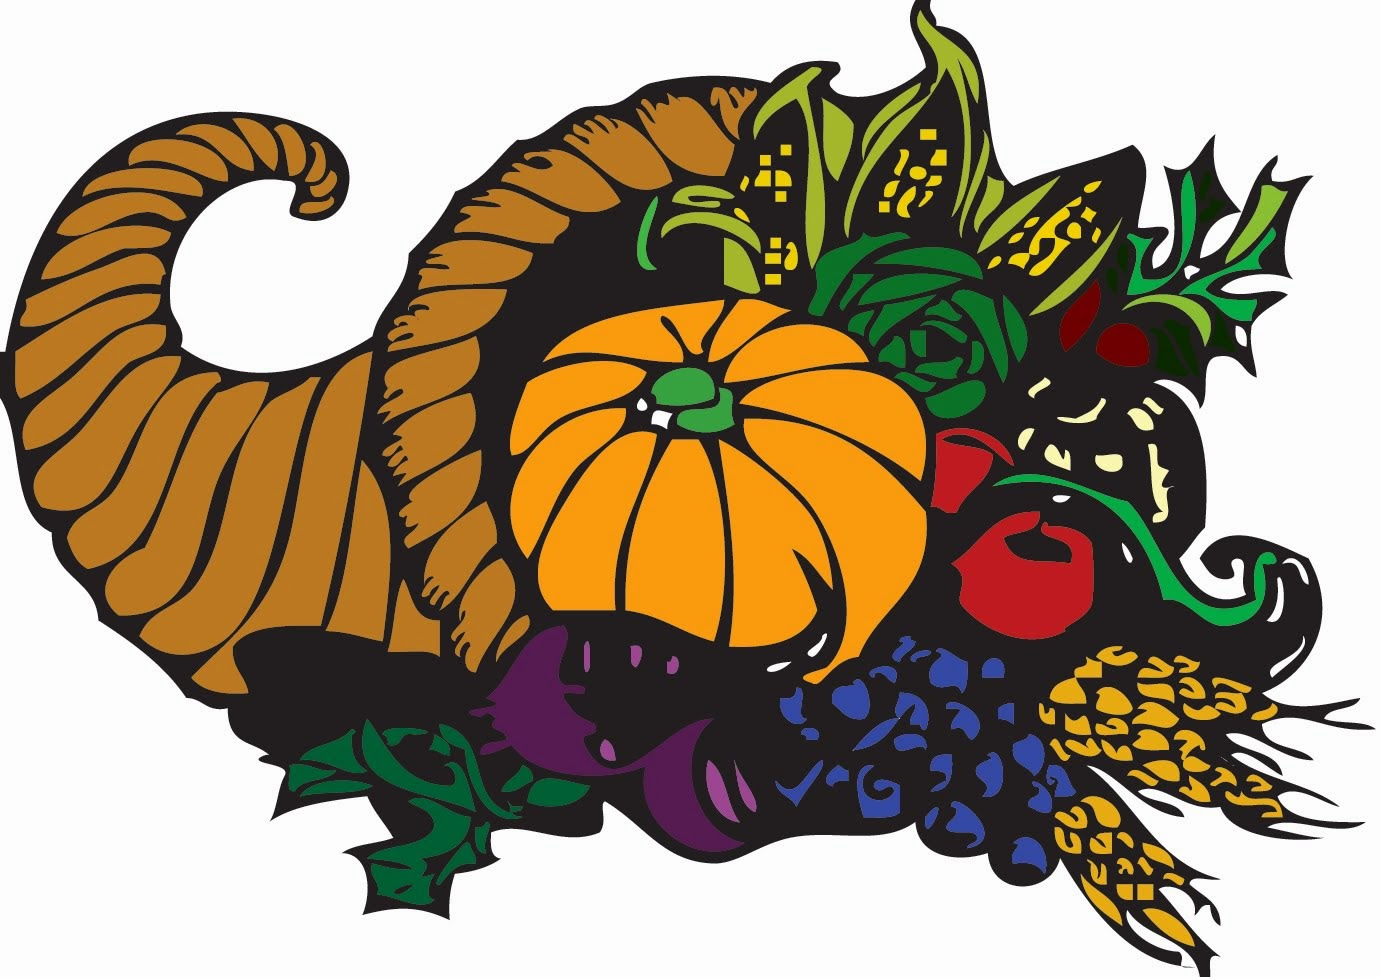 Thanksgiving community service clipart picture download Thanksgiving day dinner community of service clipart - Clip ... picture download